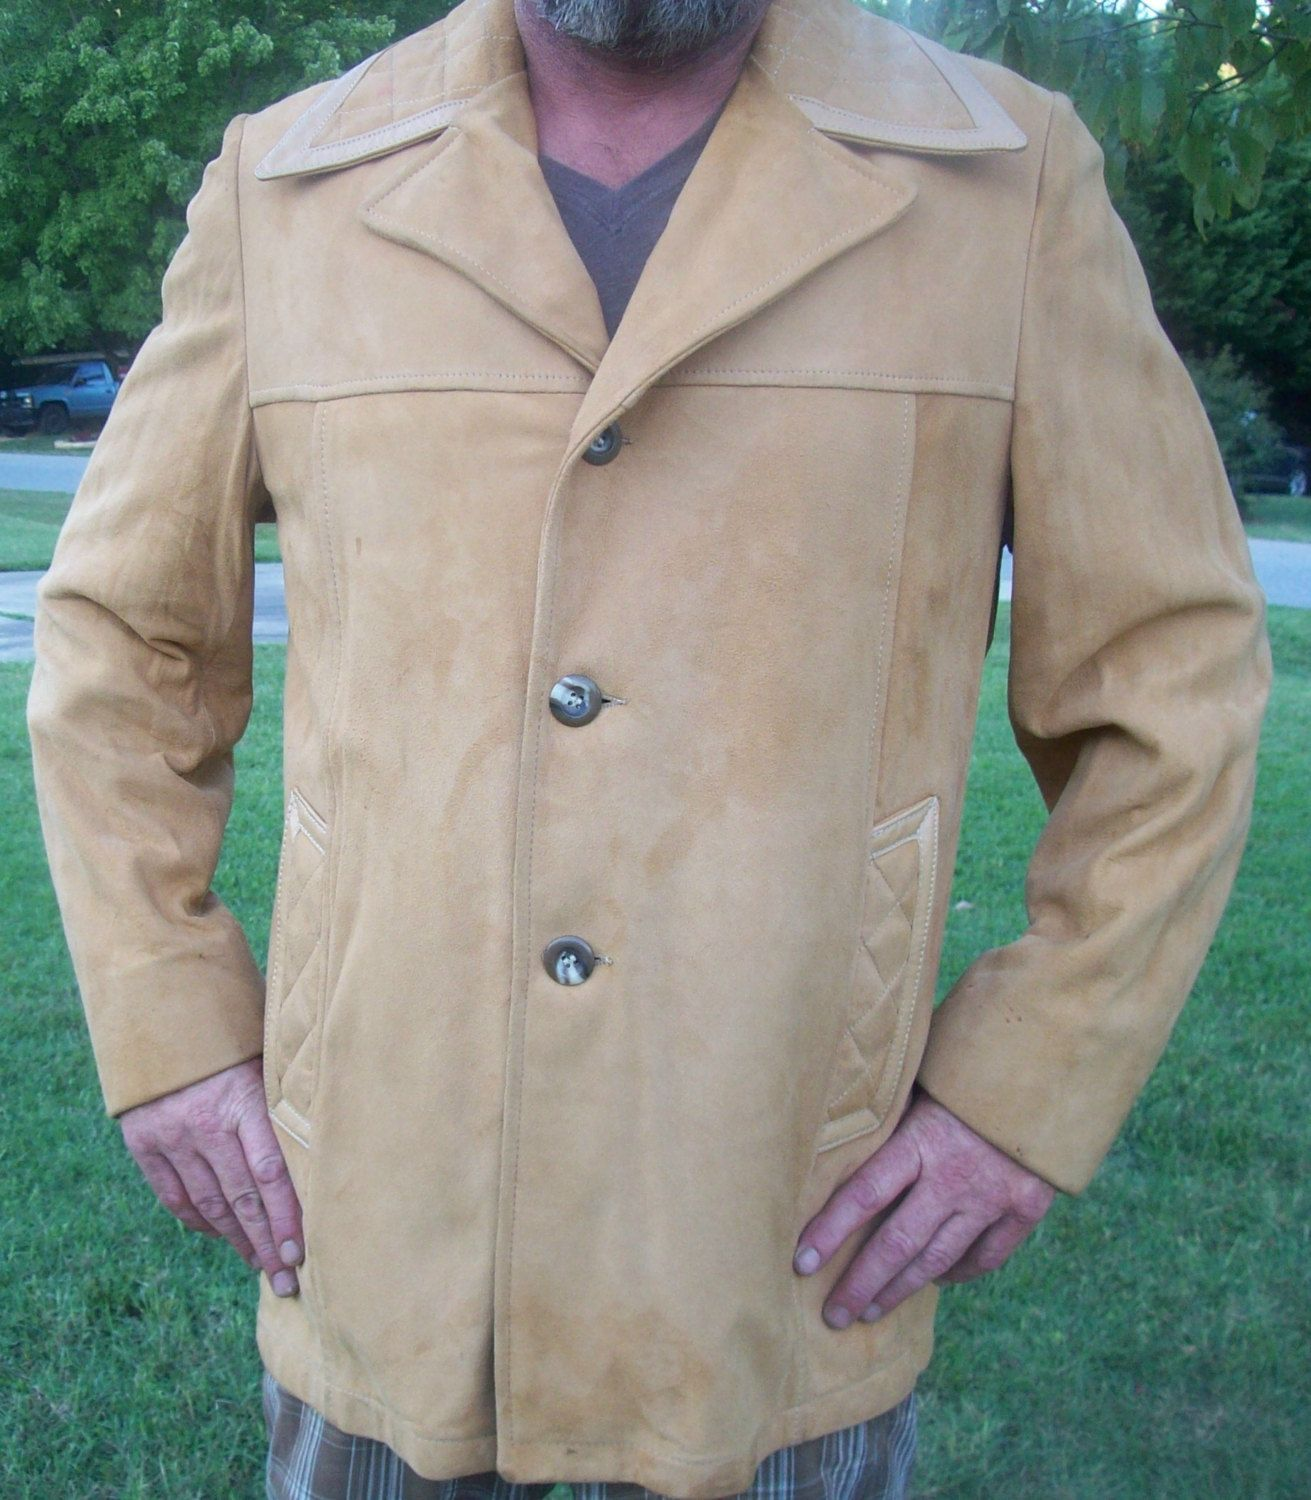 Vintage 1960's Lakeland soft suede light brown single breasted blazer style jacket / coat by YoNeato on Etsy